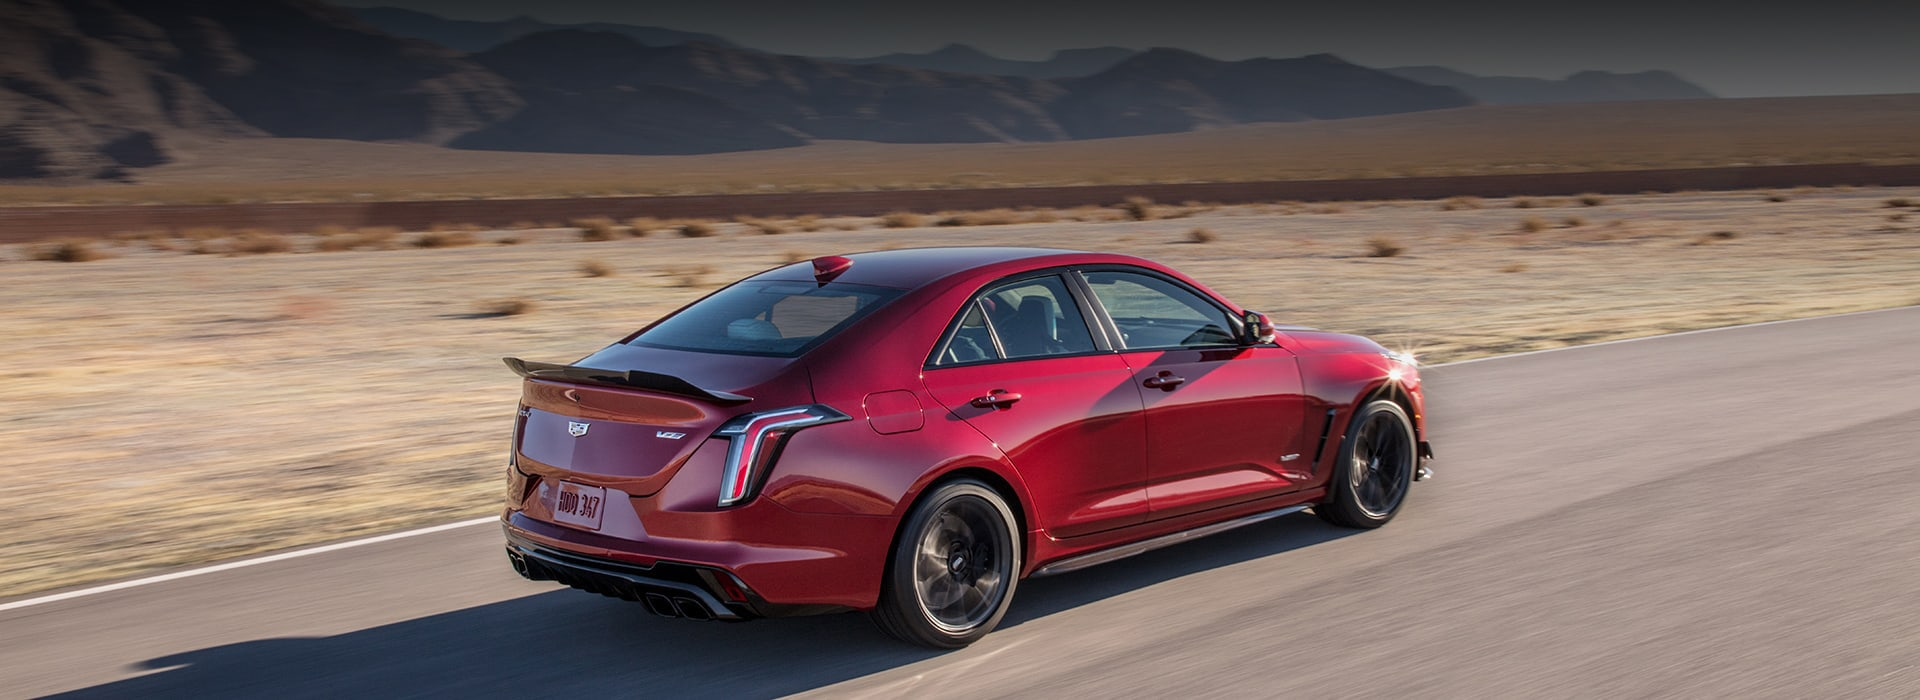 2022 Cadillac CT4-V Blackwing